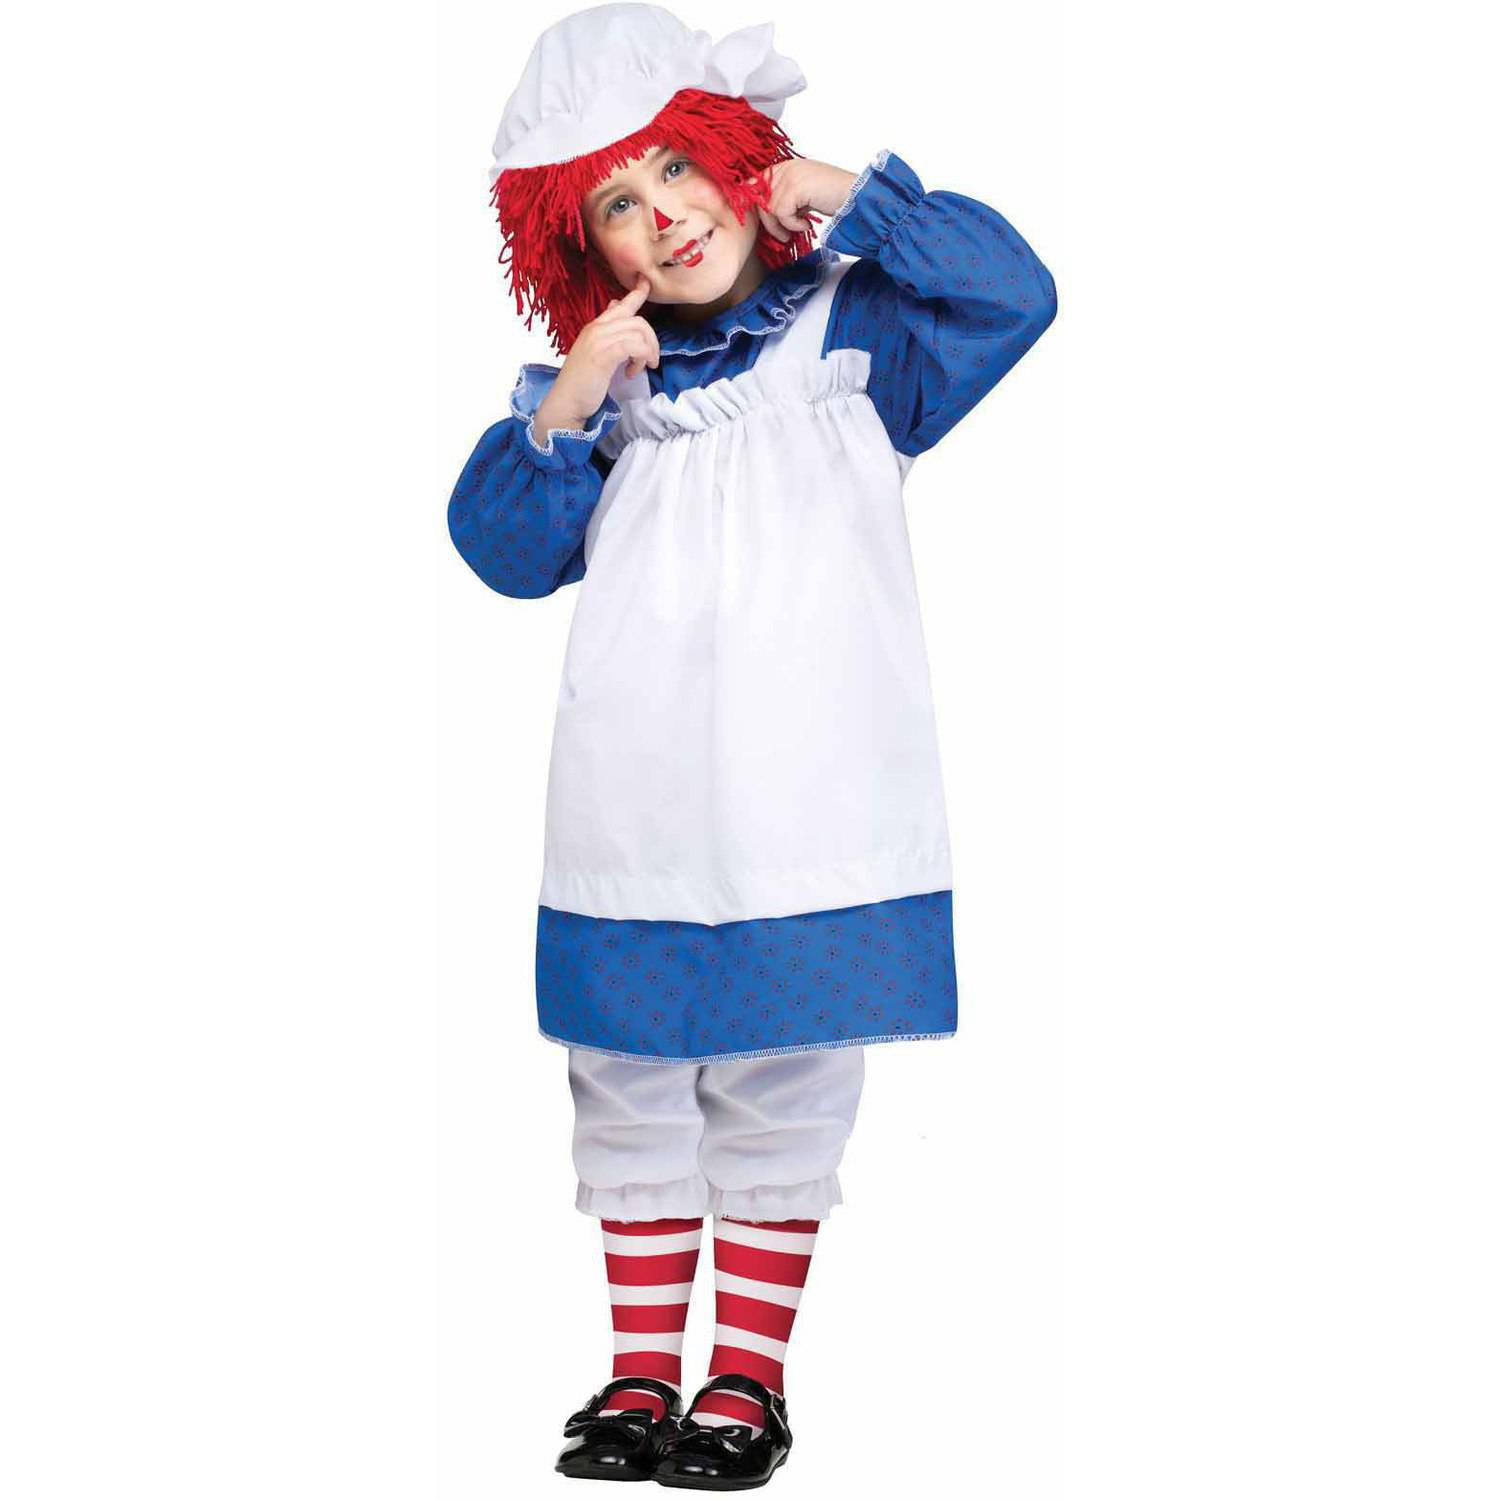 sc 1 st  Walmart & Raggedy Ann and Andy Ann Girlsu0027 Toddler Halloween Costume - Walmart.com